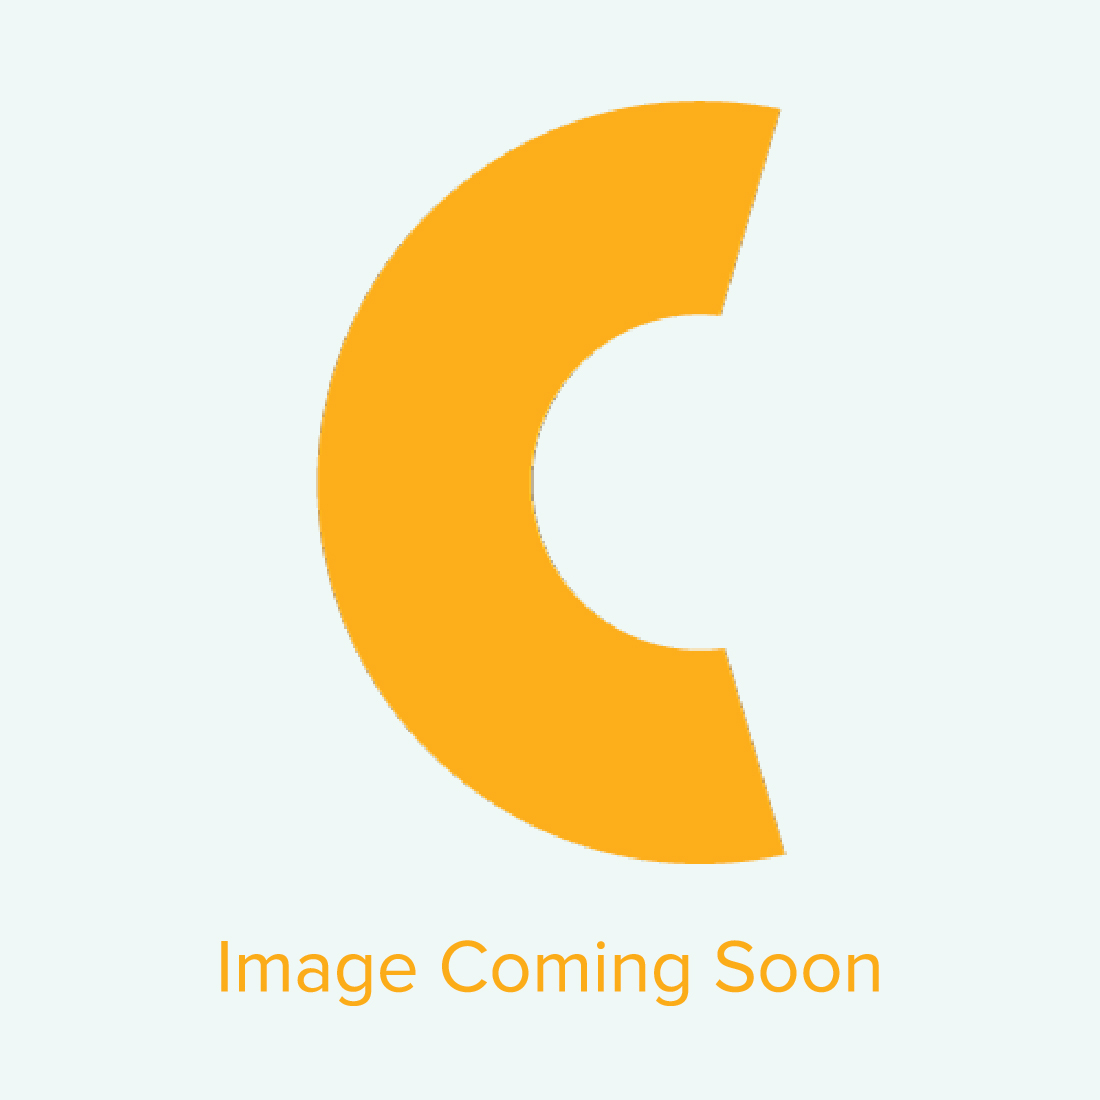 Clear Shot Glass with Gold Trim and Printable White Area for Sublimation Printing - 1.5oz